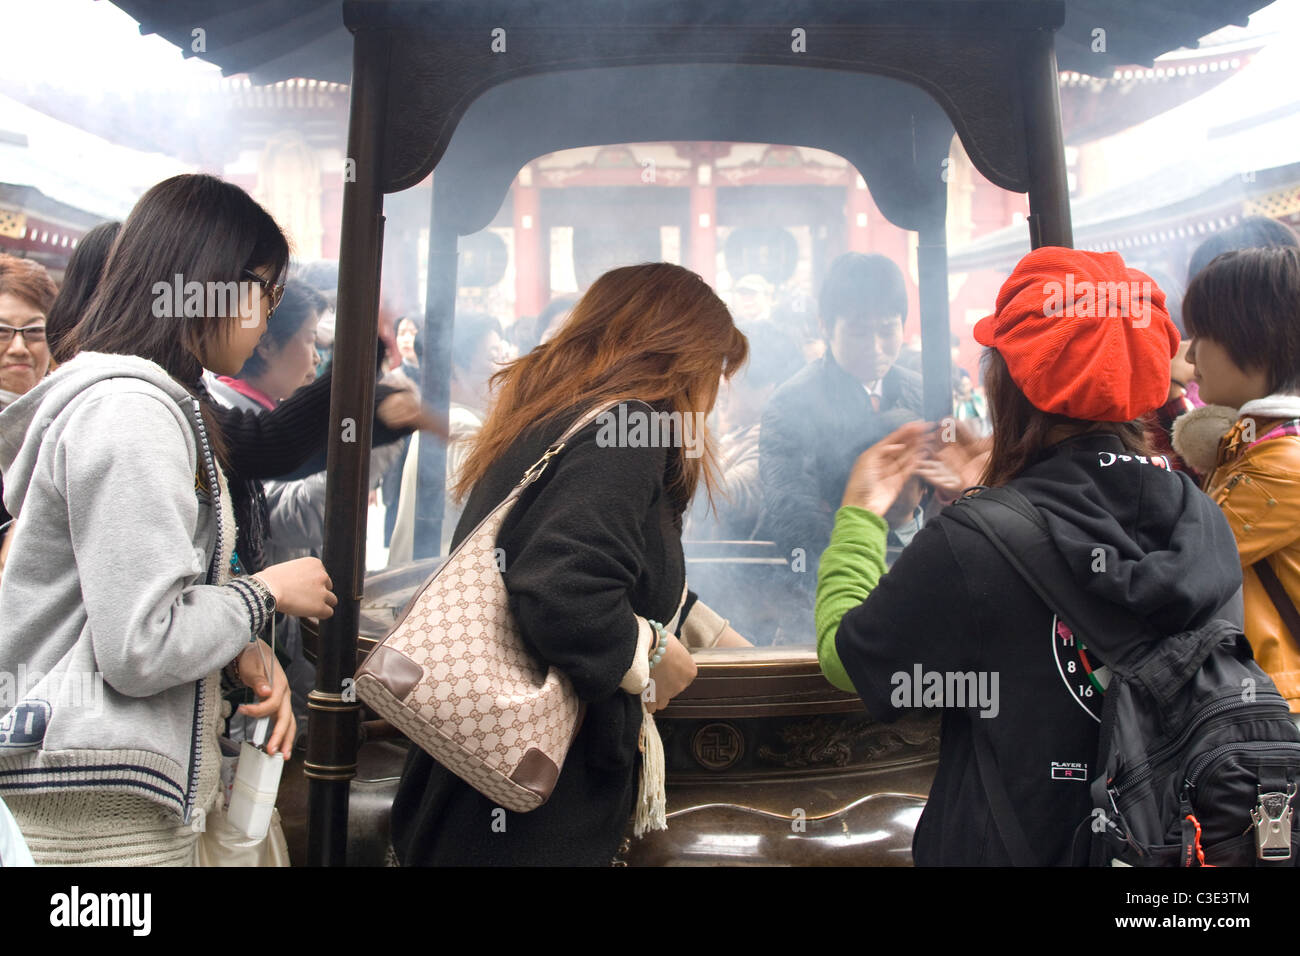 Japanese women breathing in incense smoke for good health - Stock Image